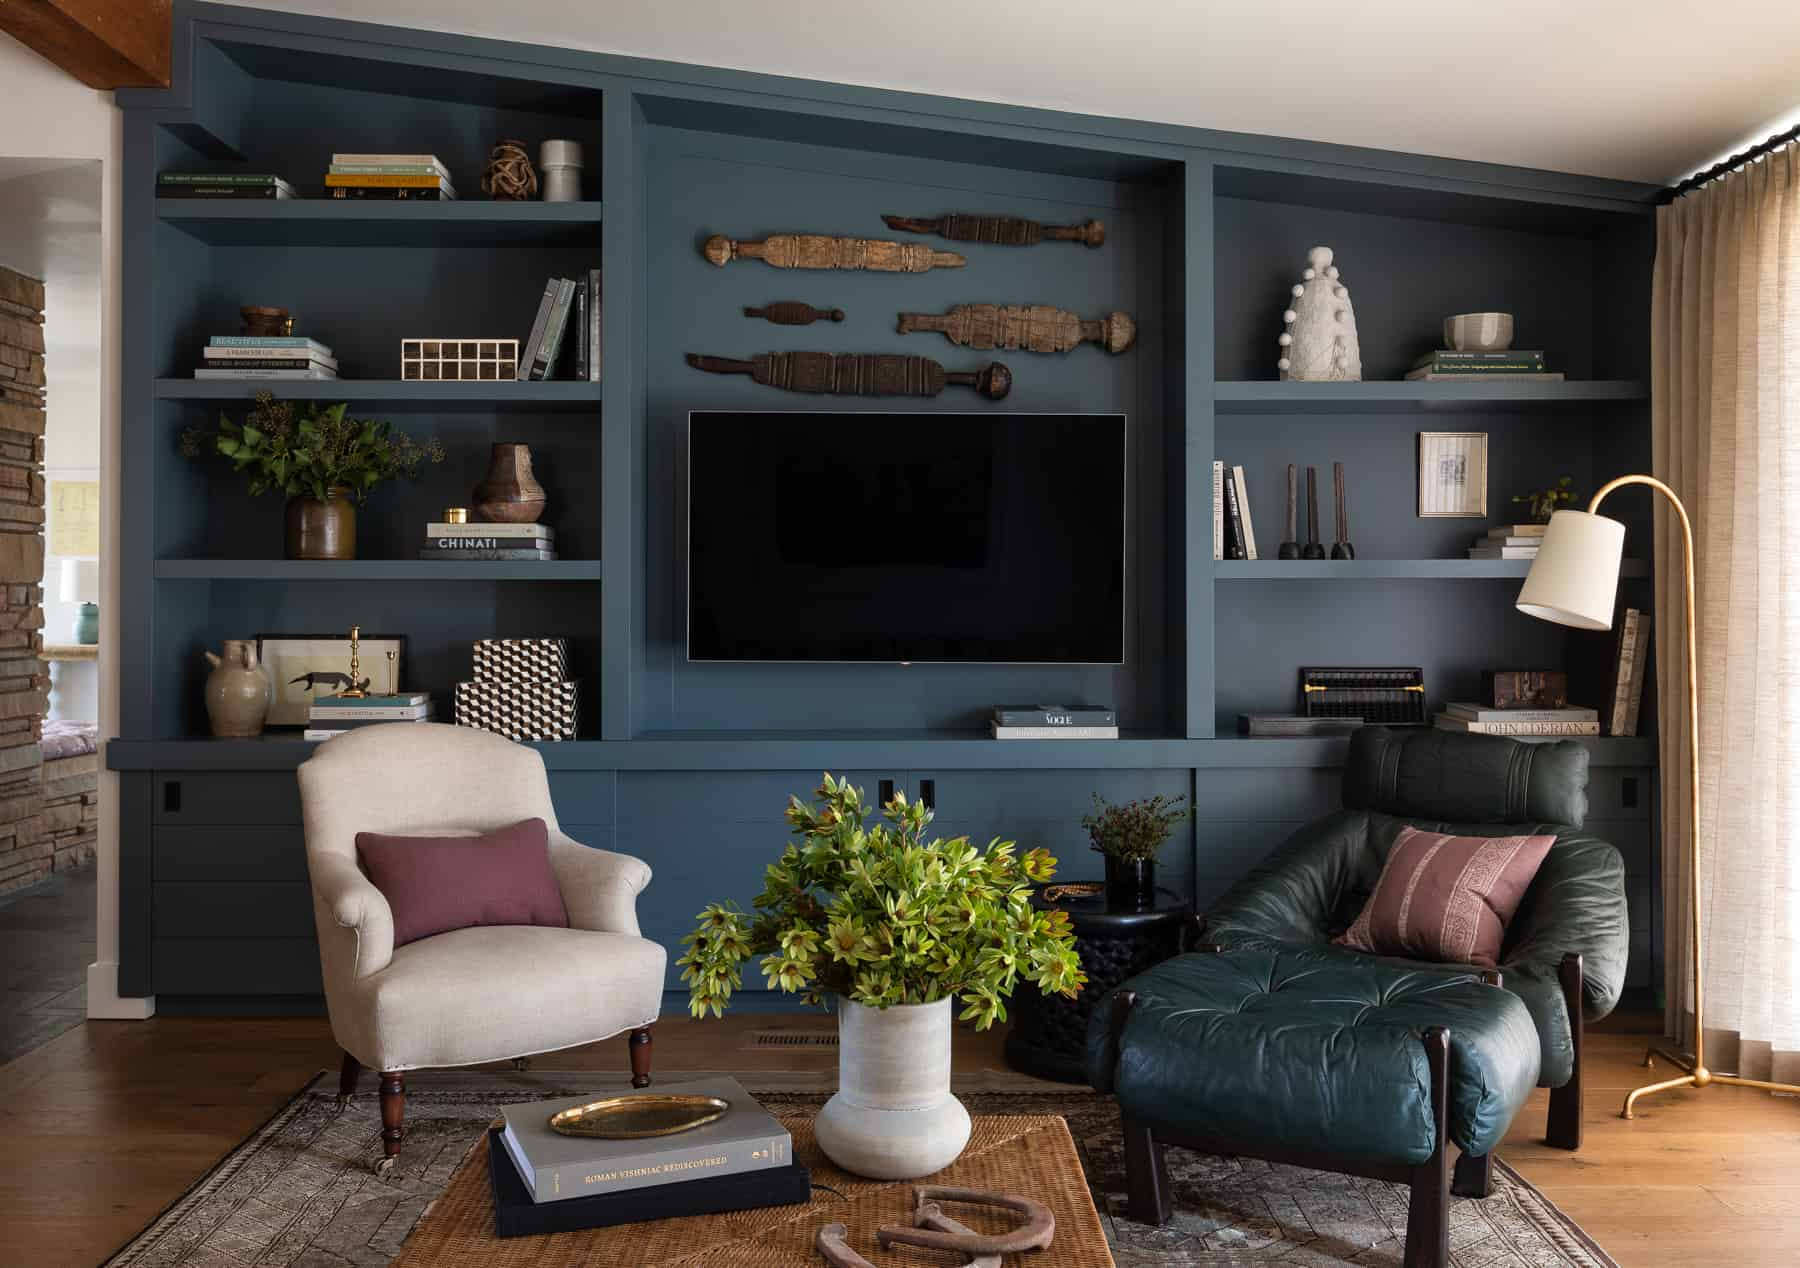 Image of: Heidi Caillier Design Seattle Interior Designer Olympic Manor House Modern Traditional Custom Blue Built Ins Bookshelves Styling Vintage Leather Chair Brass Lamp Drapes Mid Century Tv Heidi Caillier